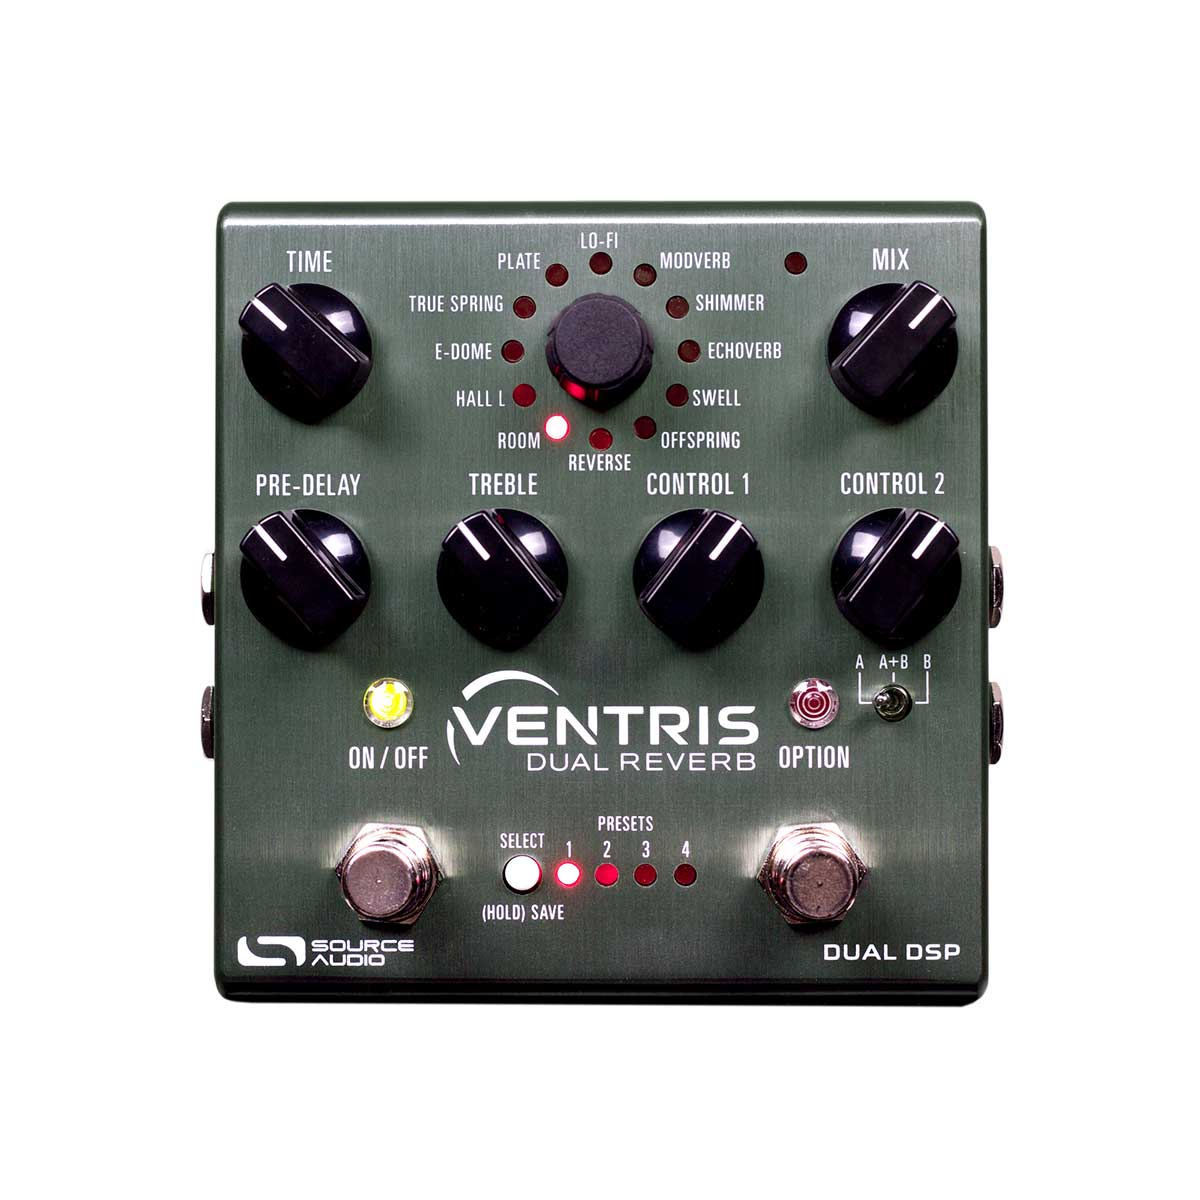 Source Audio One Series Ventris Dual Reverb